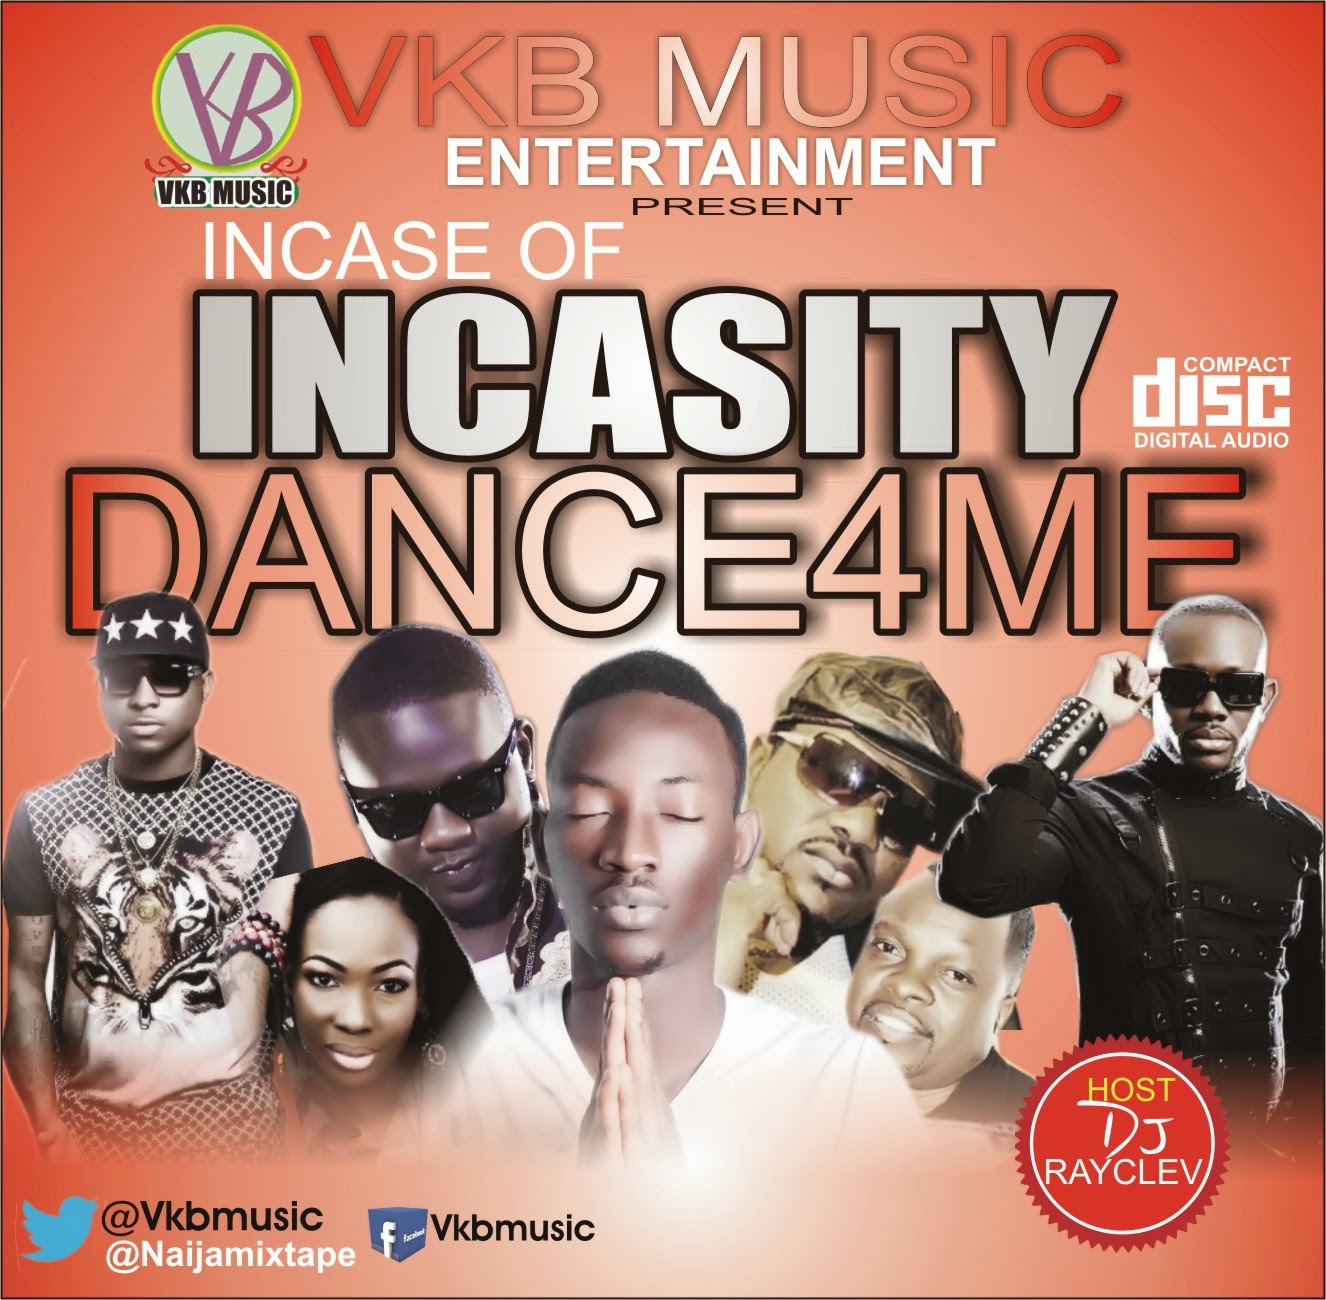 MIXTAPE: INCASE OF INCASITY DANCE 4 ME MIX